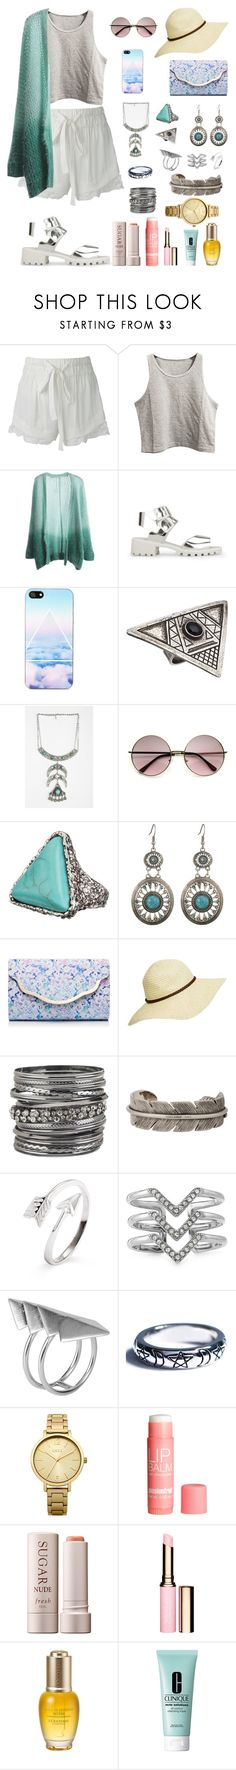 """""""*Someday I would like to know that when I die I will find my soul.*"""" by alyssadc ❤ liked on Polyvore featuring IRO, Miista, NOVA, Bita Pourtavoosi, Vanessa Mooney, Forever New, maurices, Yves Saint Laurent, Stella & Dot and First People First"""